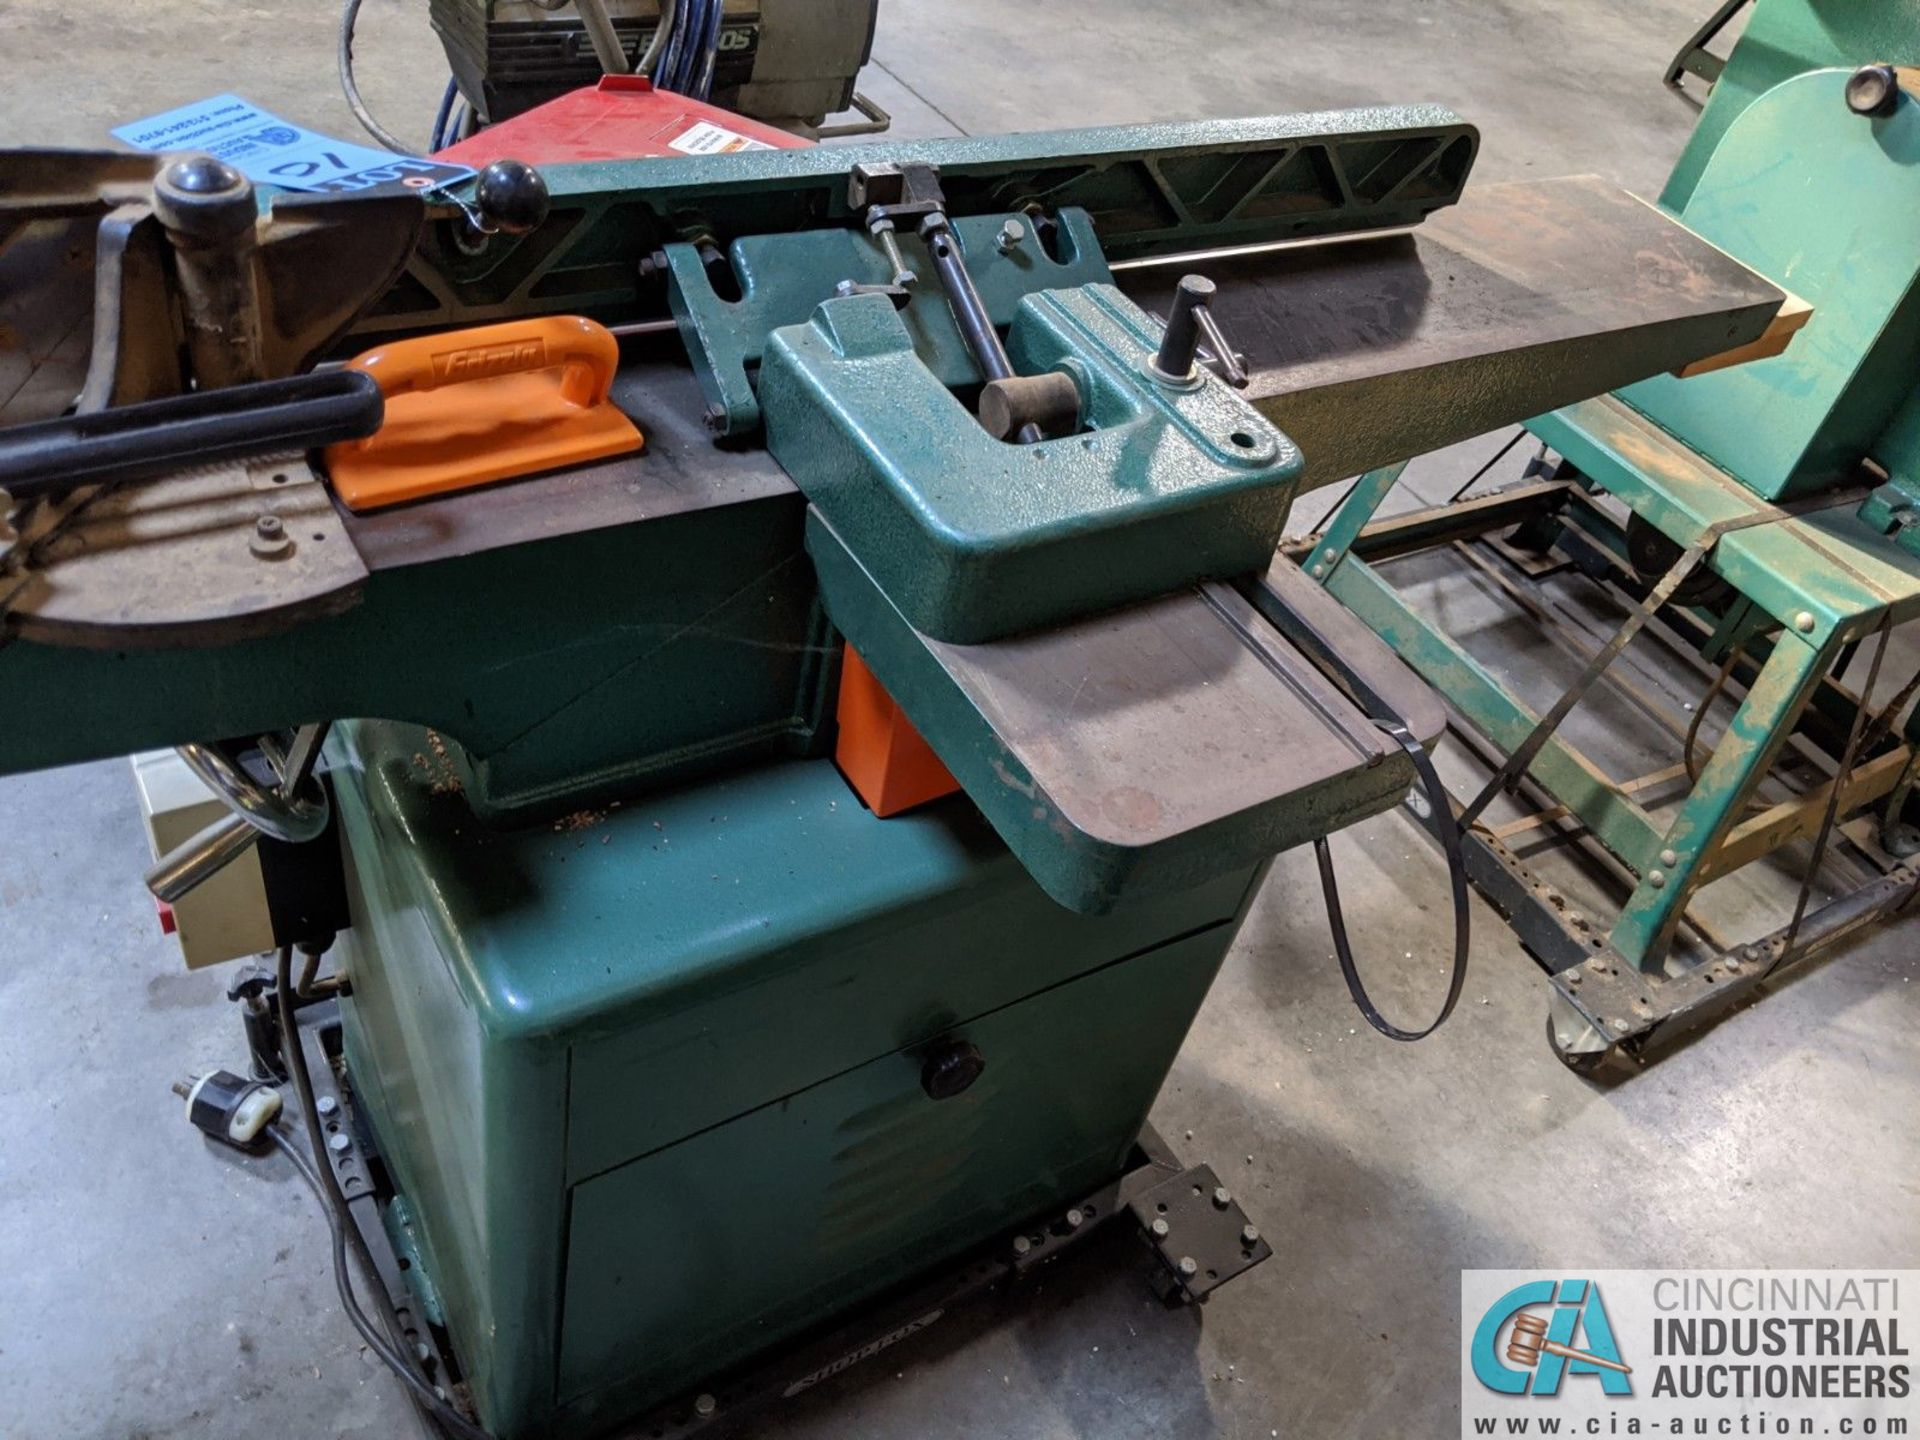 """8"""" GRIZZLY MODEL G1018HW JOINTER; S/N 6388108, 9"""" X 65"""" TABLE (8635 East Ave., Mentor, OH 44060 - - Image 4 of 7"""